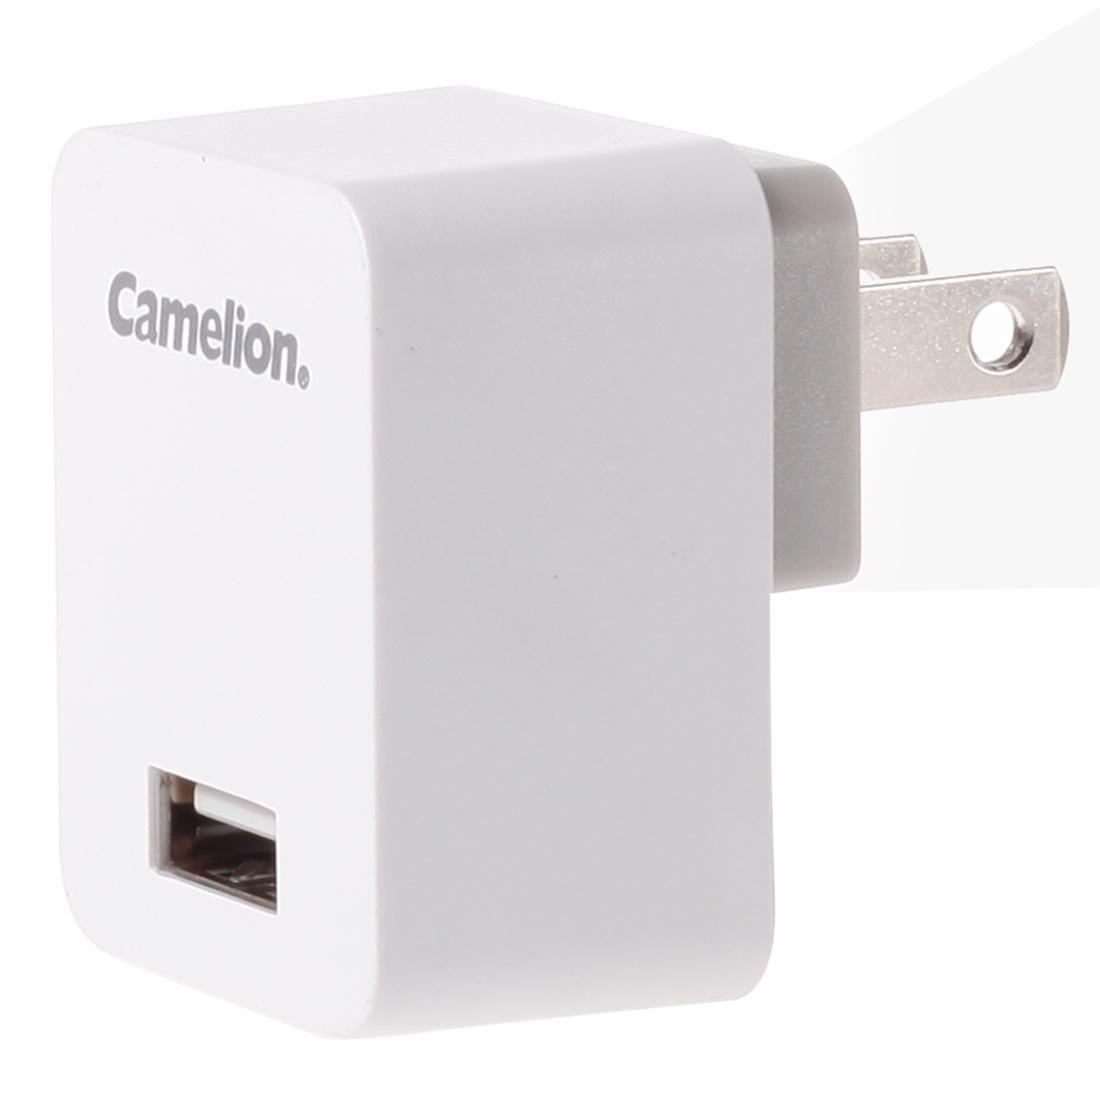 Camelion Power Charger 1 USB Port AD568 White